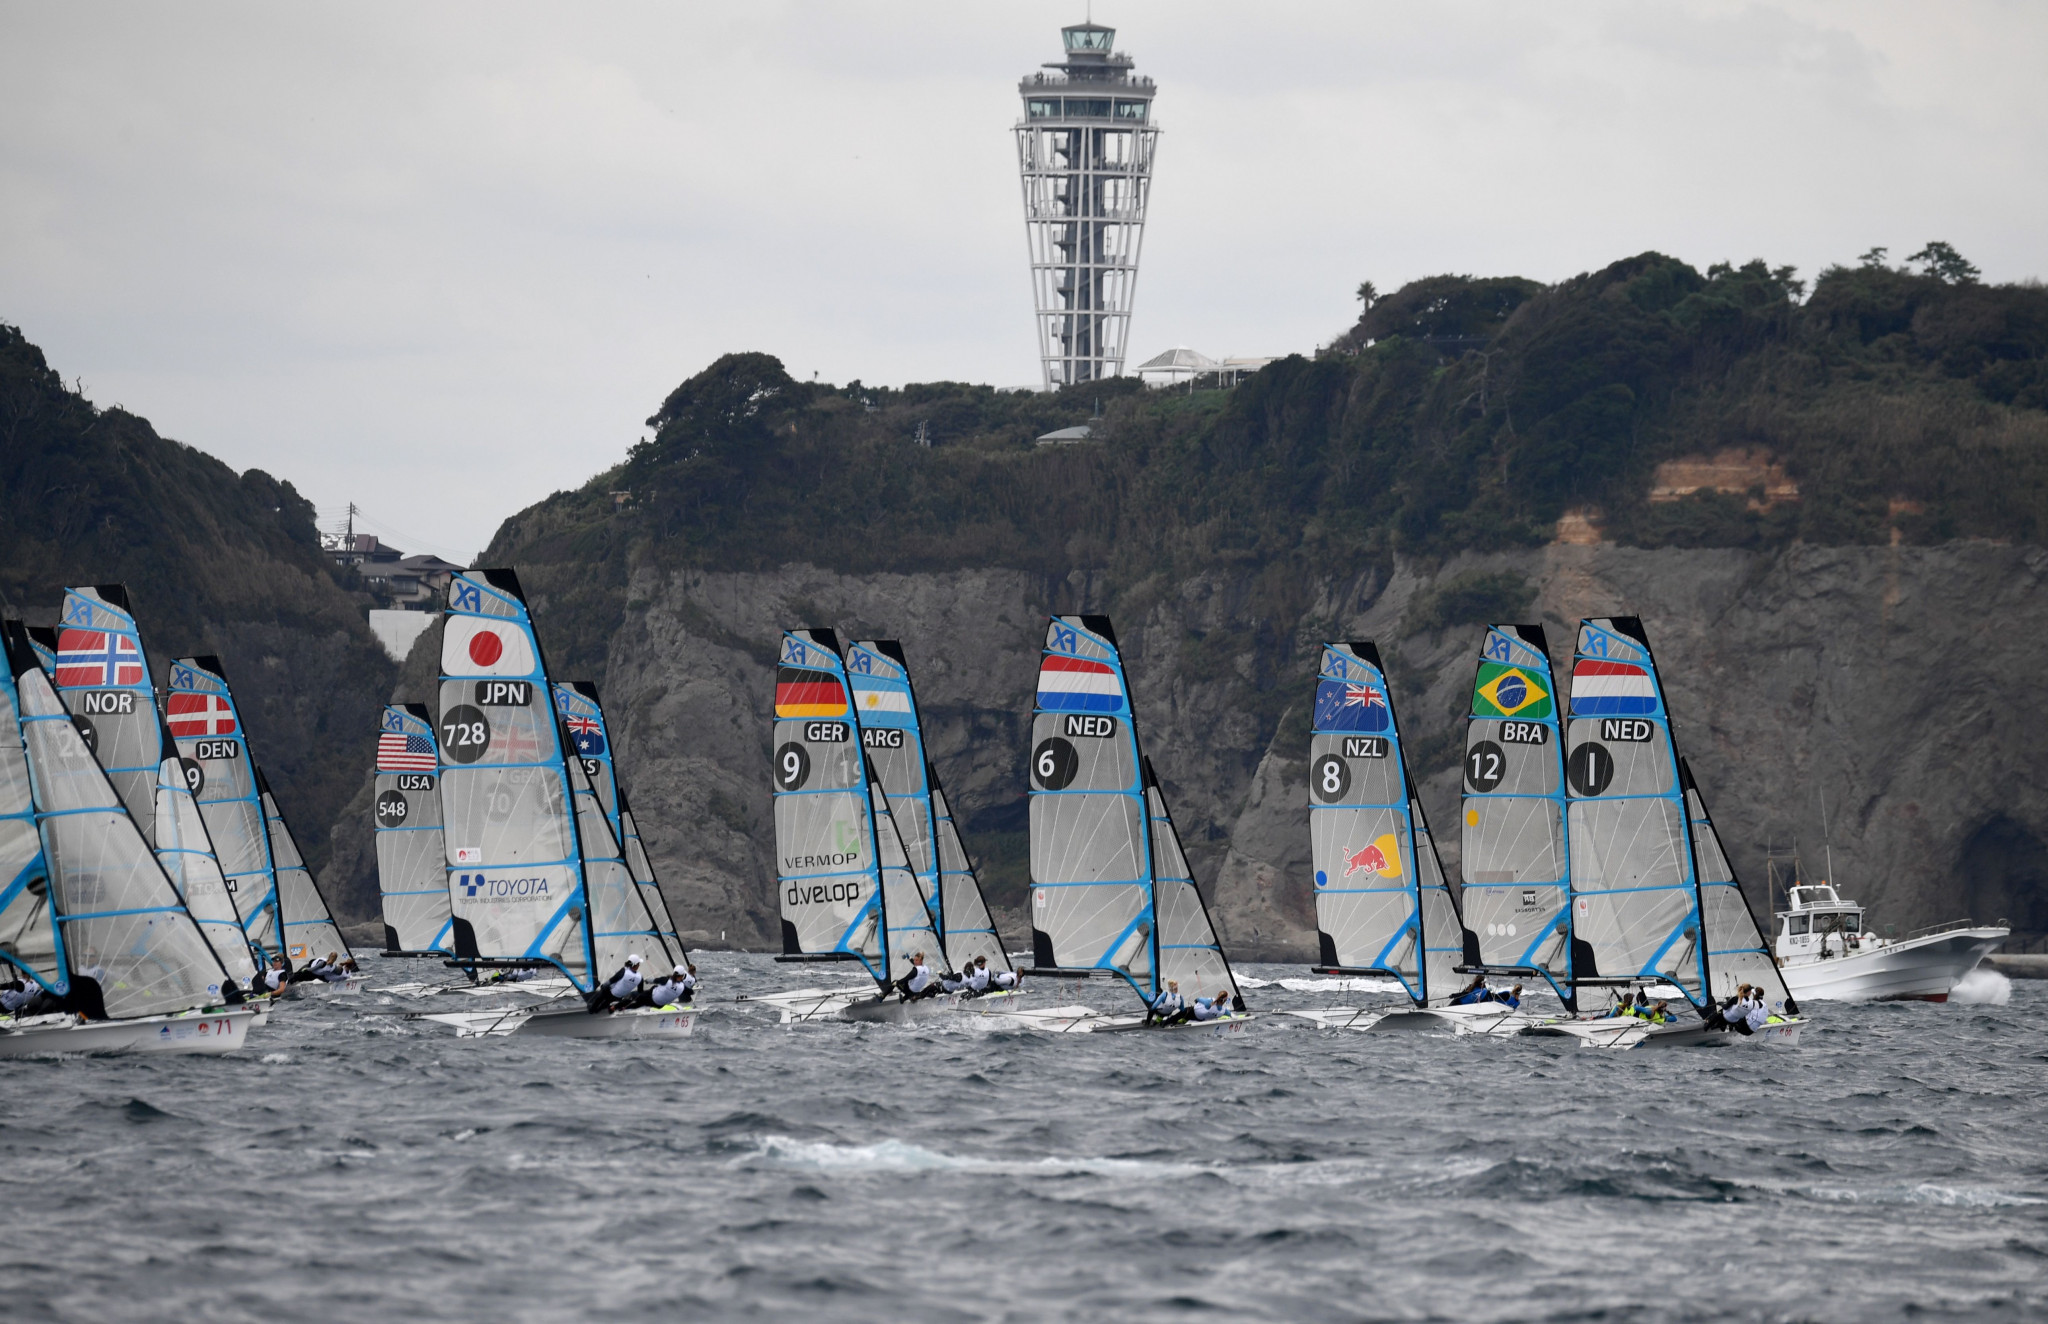 Tokyo 2020 organisers have reduced the crowd size for the sailing event off Enoshima island ©Getty Images